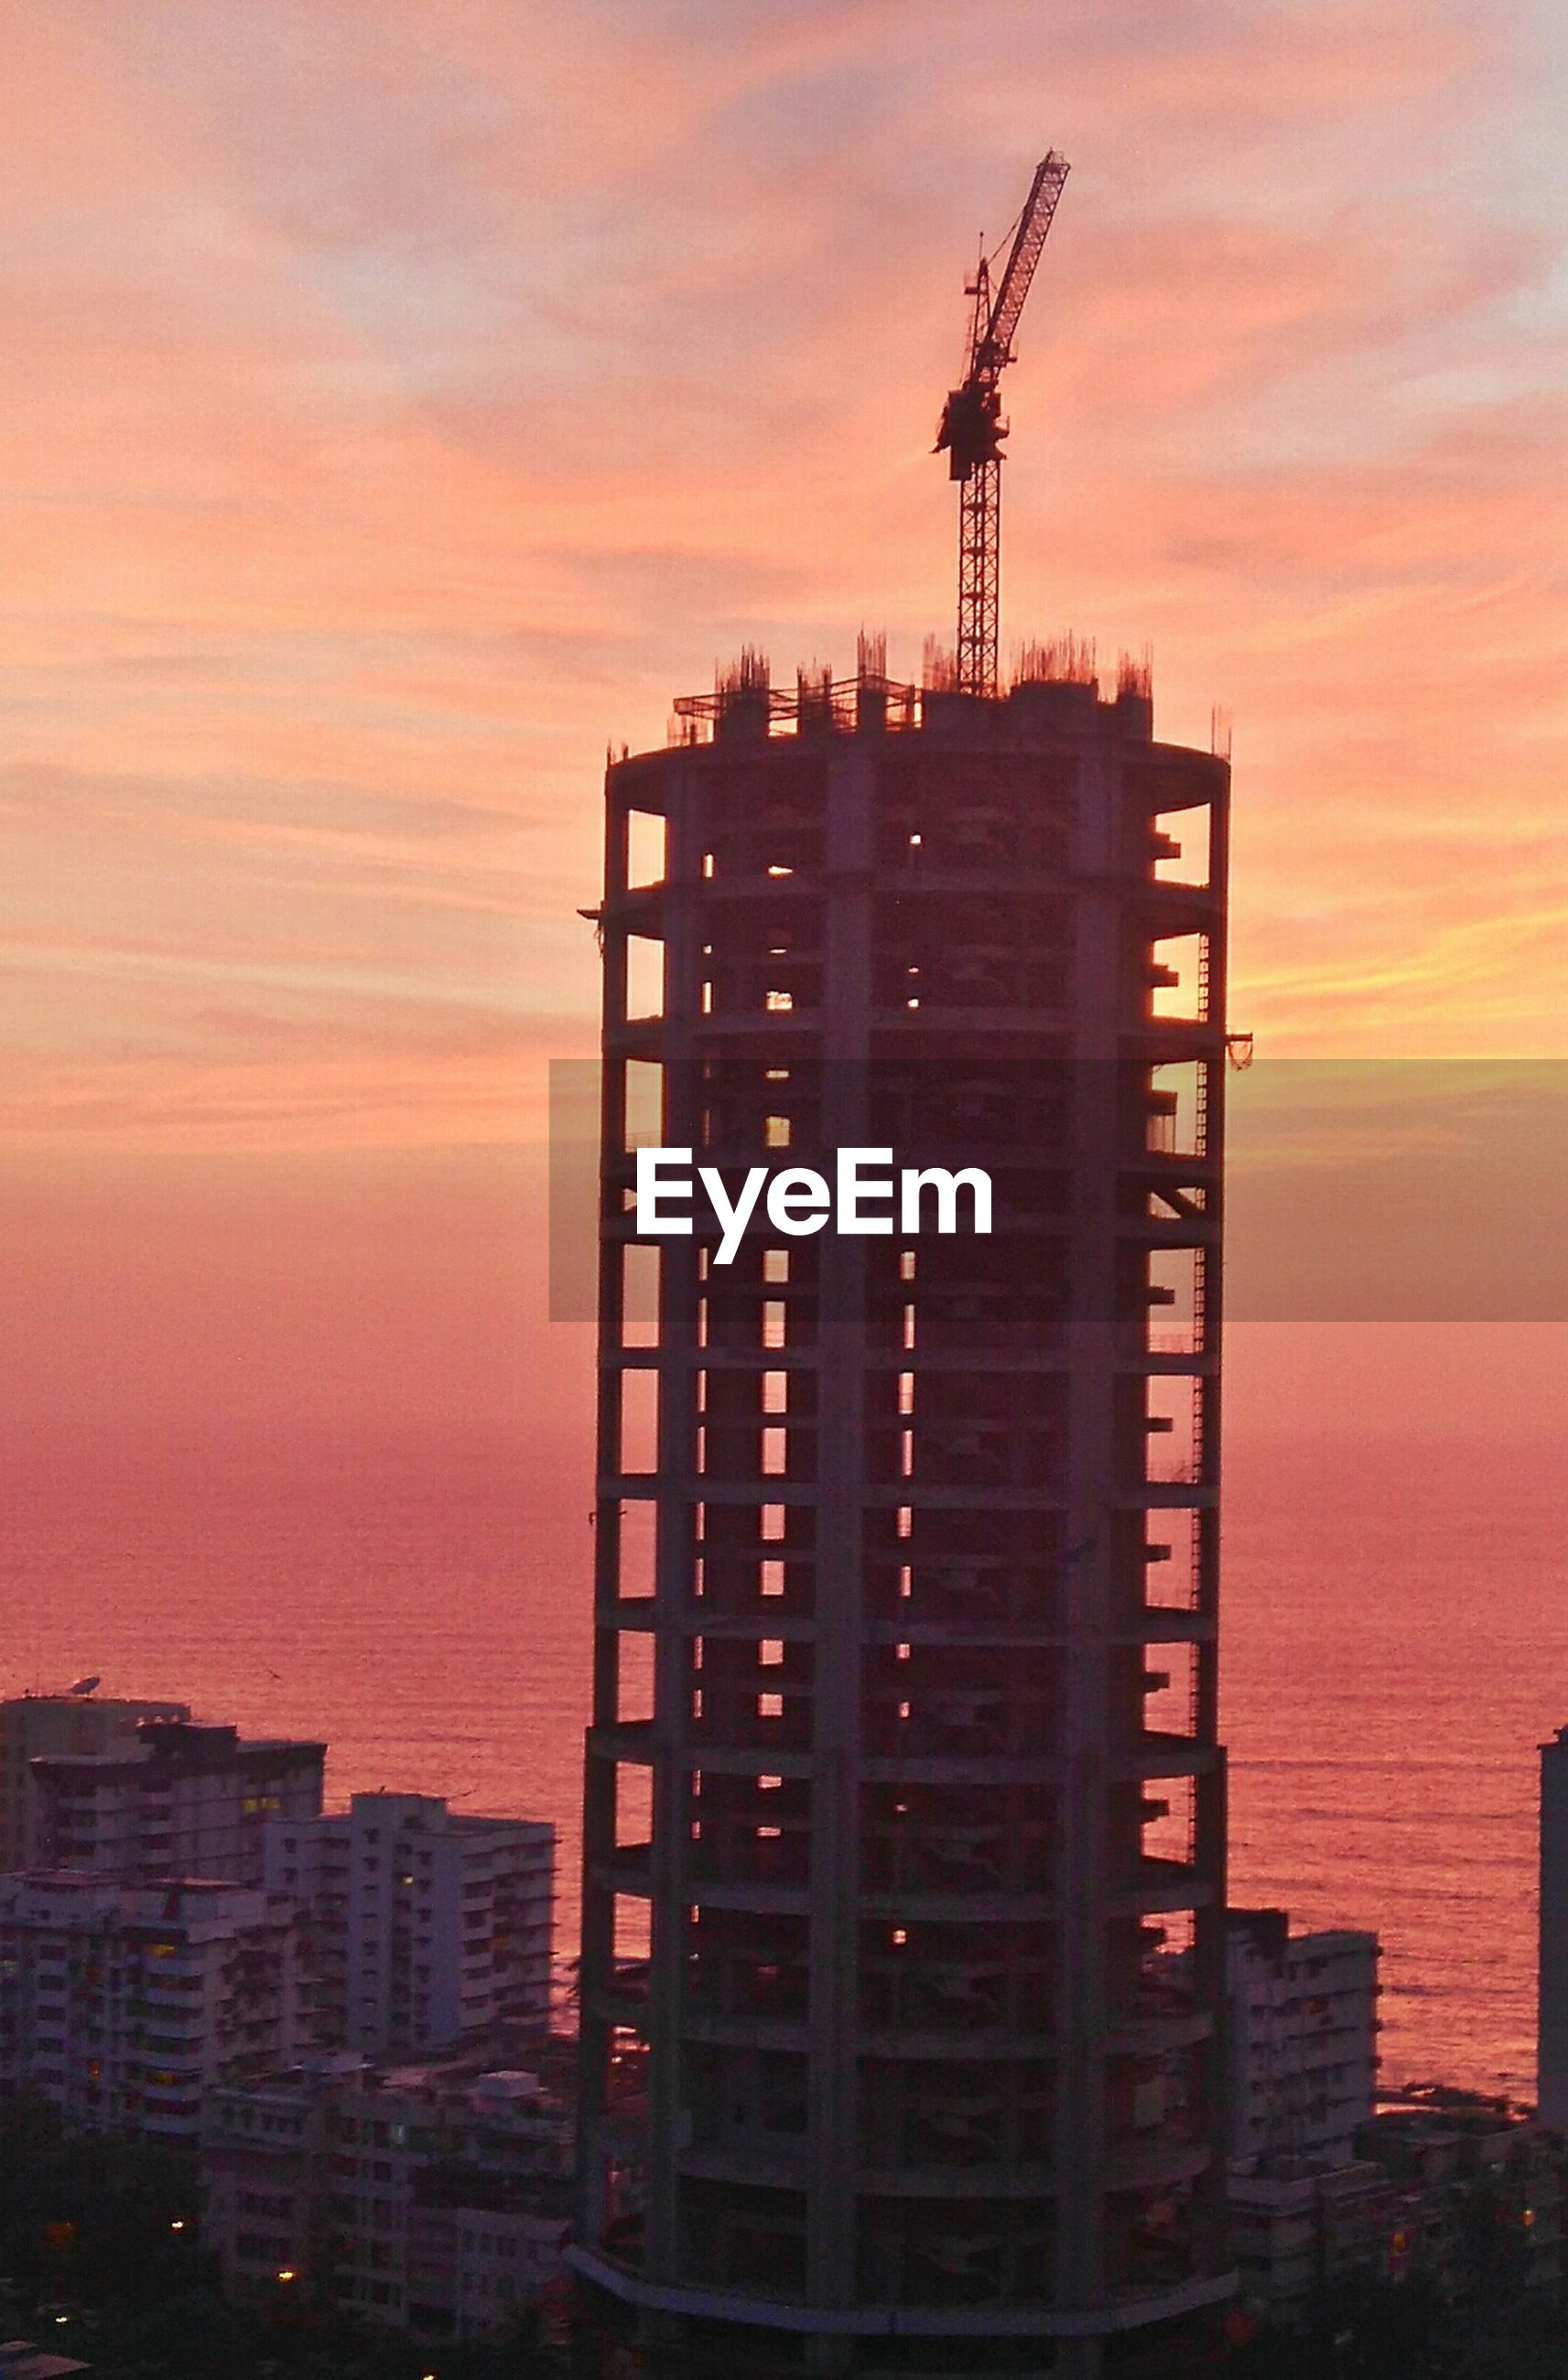 sunset, architecture, building exterior, built structure, sky, orange color, tower, tall - high, city, communication, cloud - sky, communications tower, silhouette, skyscraper, travel destinations, development, crane - construction machinery, outdoors, no people, modern